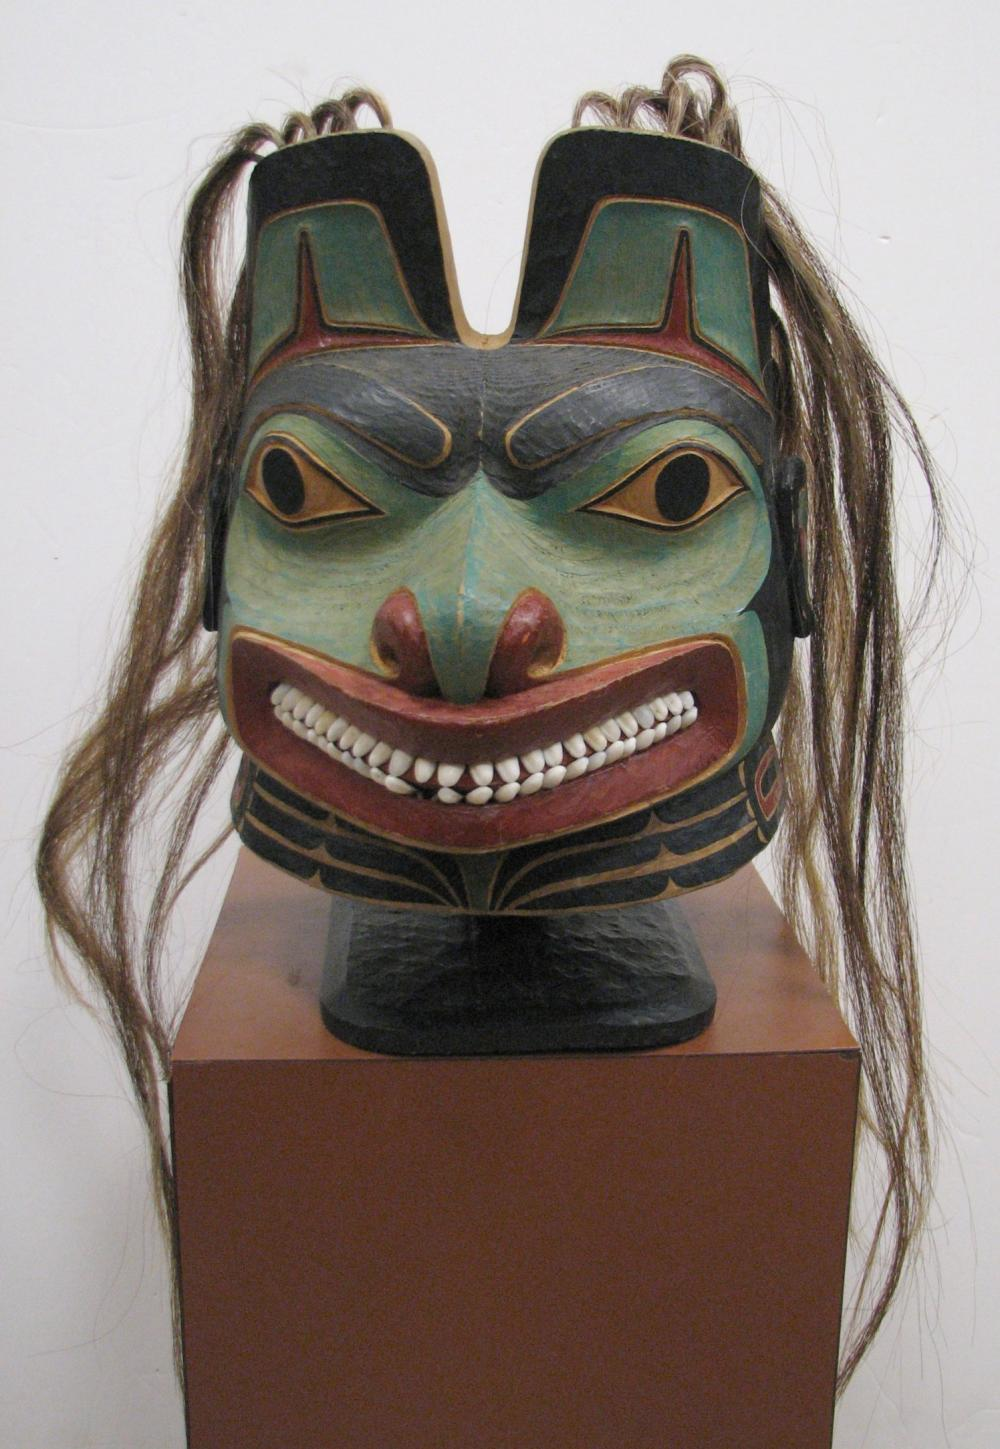 """RICHARD A. BROWN NORTHWEST NATIVE AMERICAN STYLE TLINGIT HELMET. A COMMISSIONED WORK, SIGNED AND DATED 2011. THE MASK IS 12"""" TALL EXCLUDING THE HAIR AND STAND. 15.5"""" WIDE. MADE OF CEDAR, HORSE TAIL HAIR AND SHELL TEETH"""